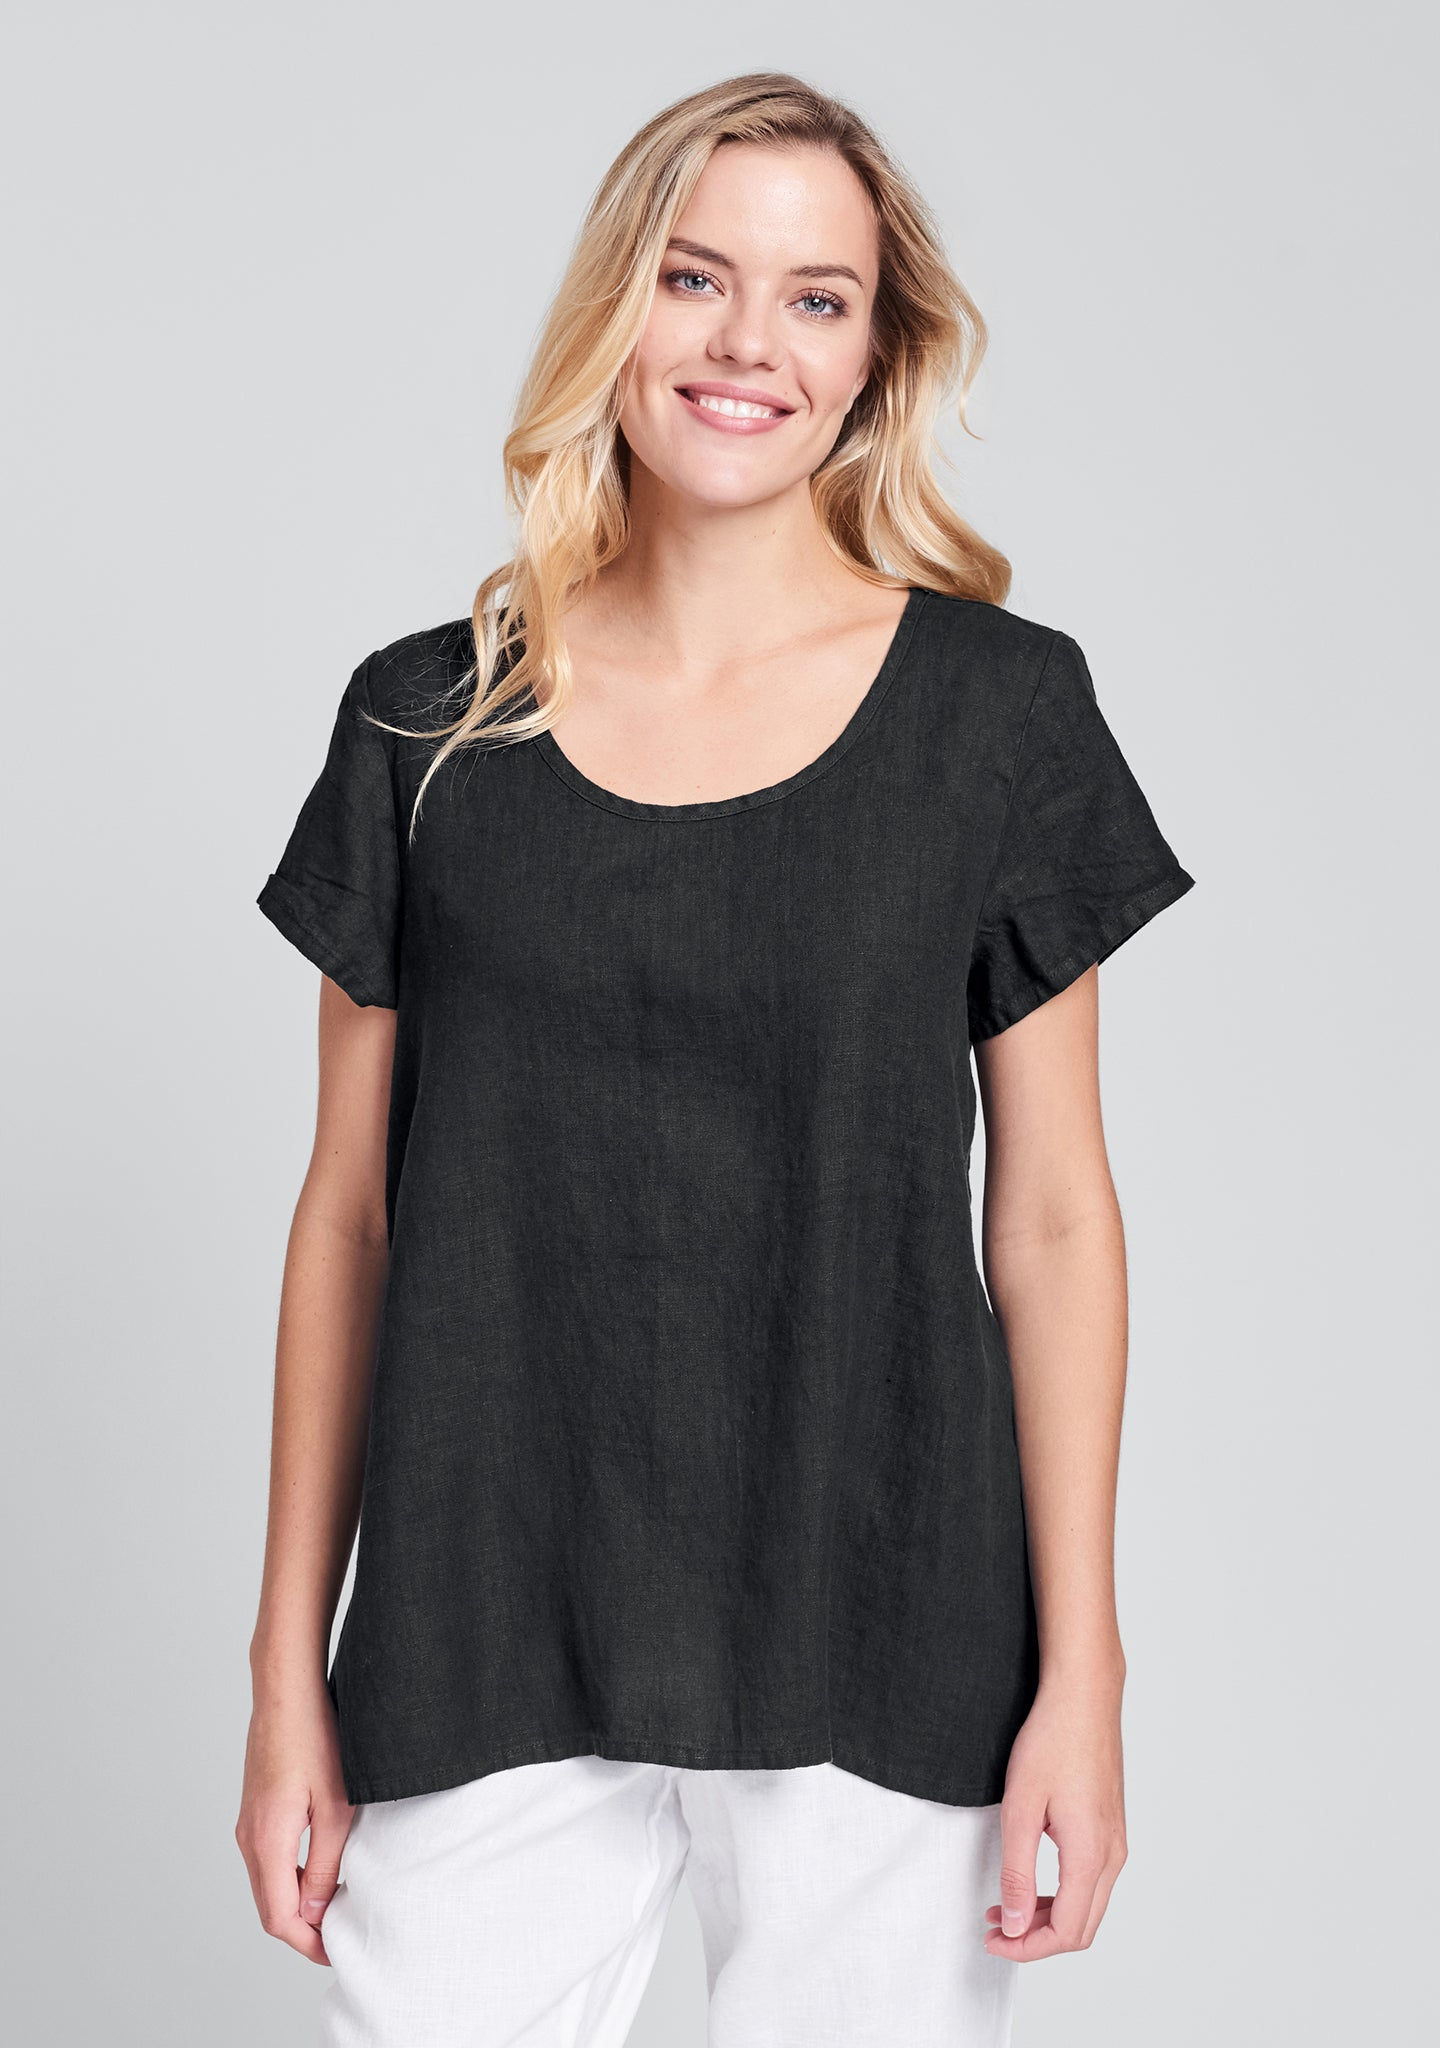 blossom blouse linen shirt black